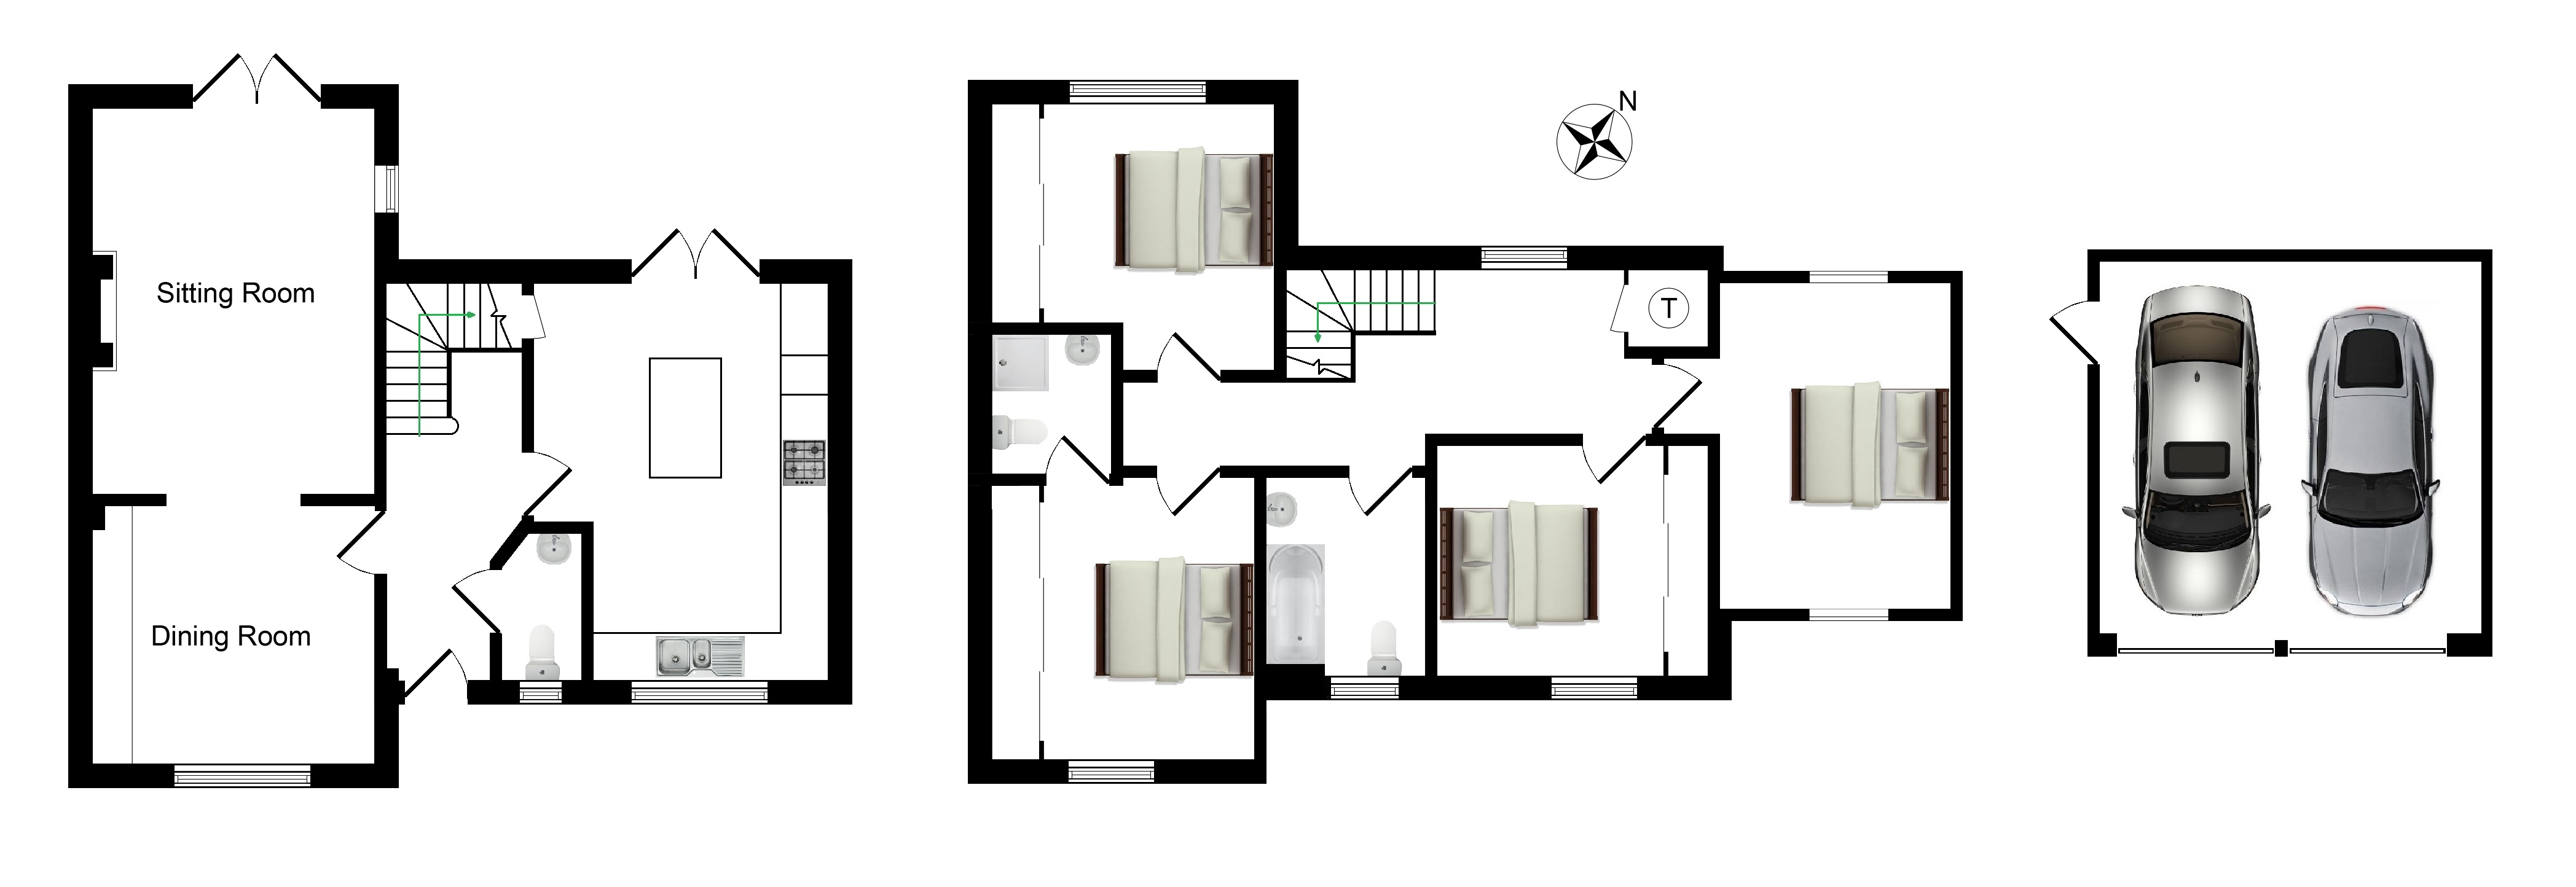 Floorplans For Tatchell Drive, Charing